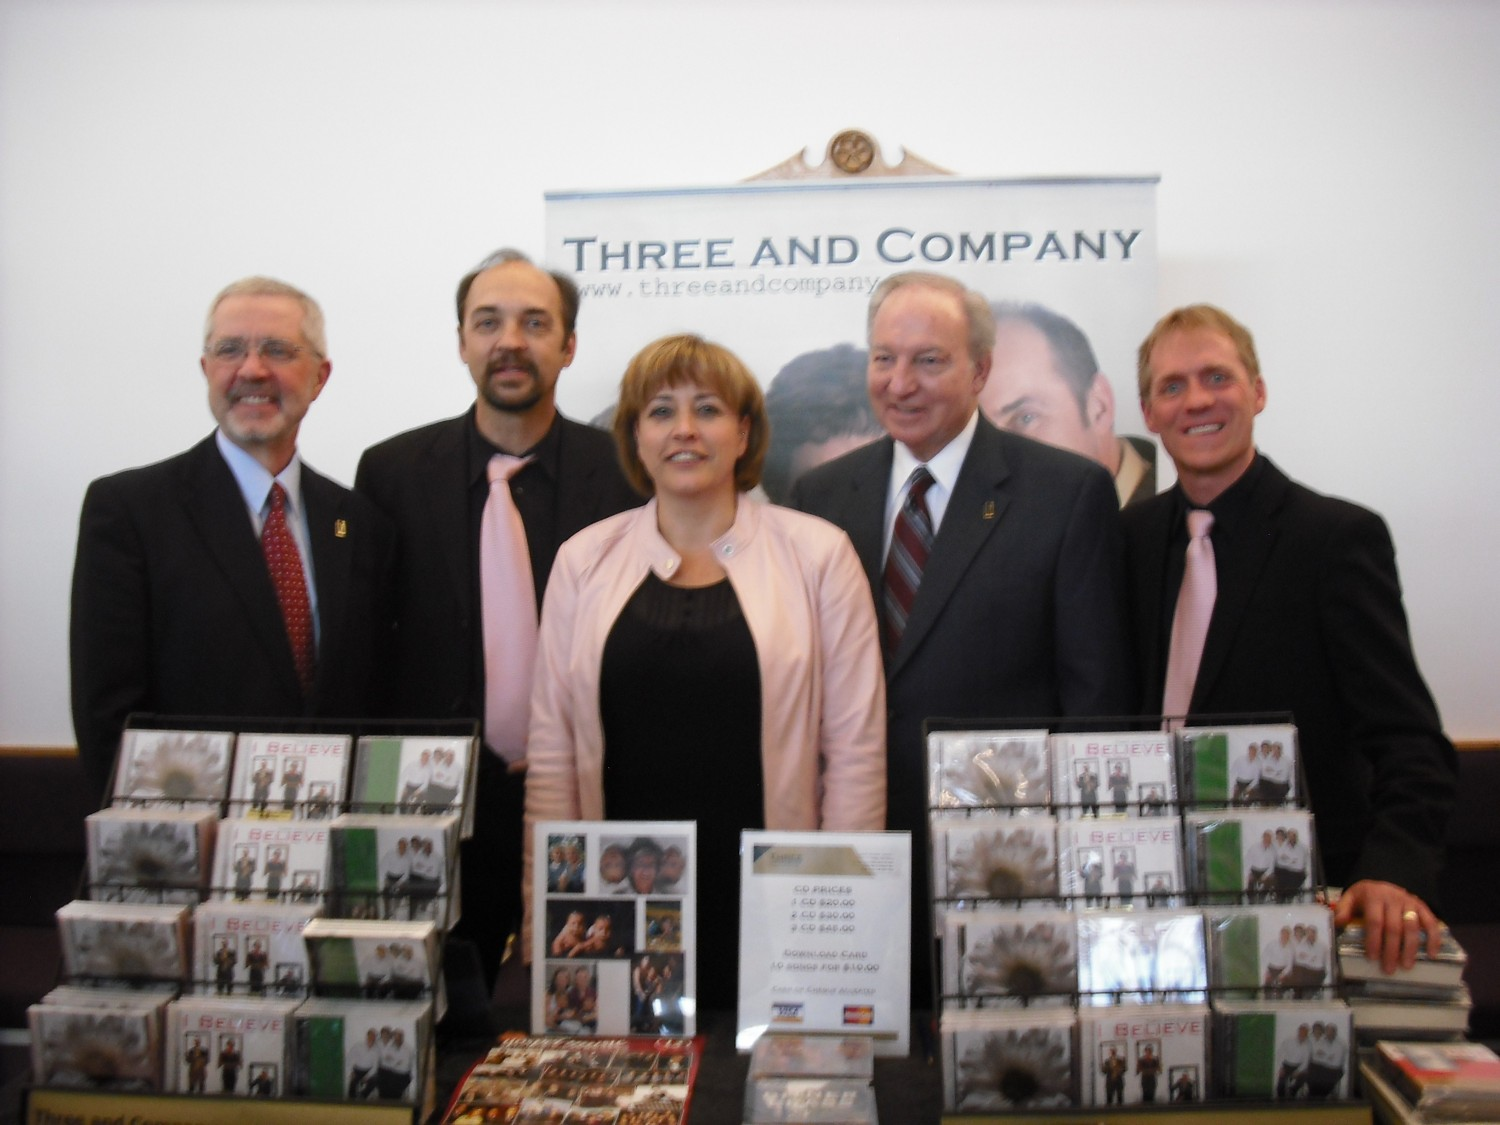 Three and Company with H.B. London (cousin to James Dobson)